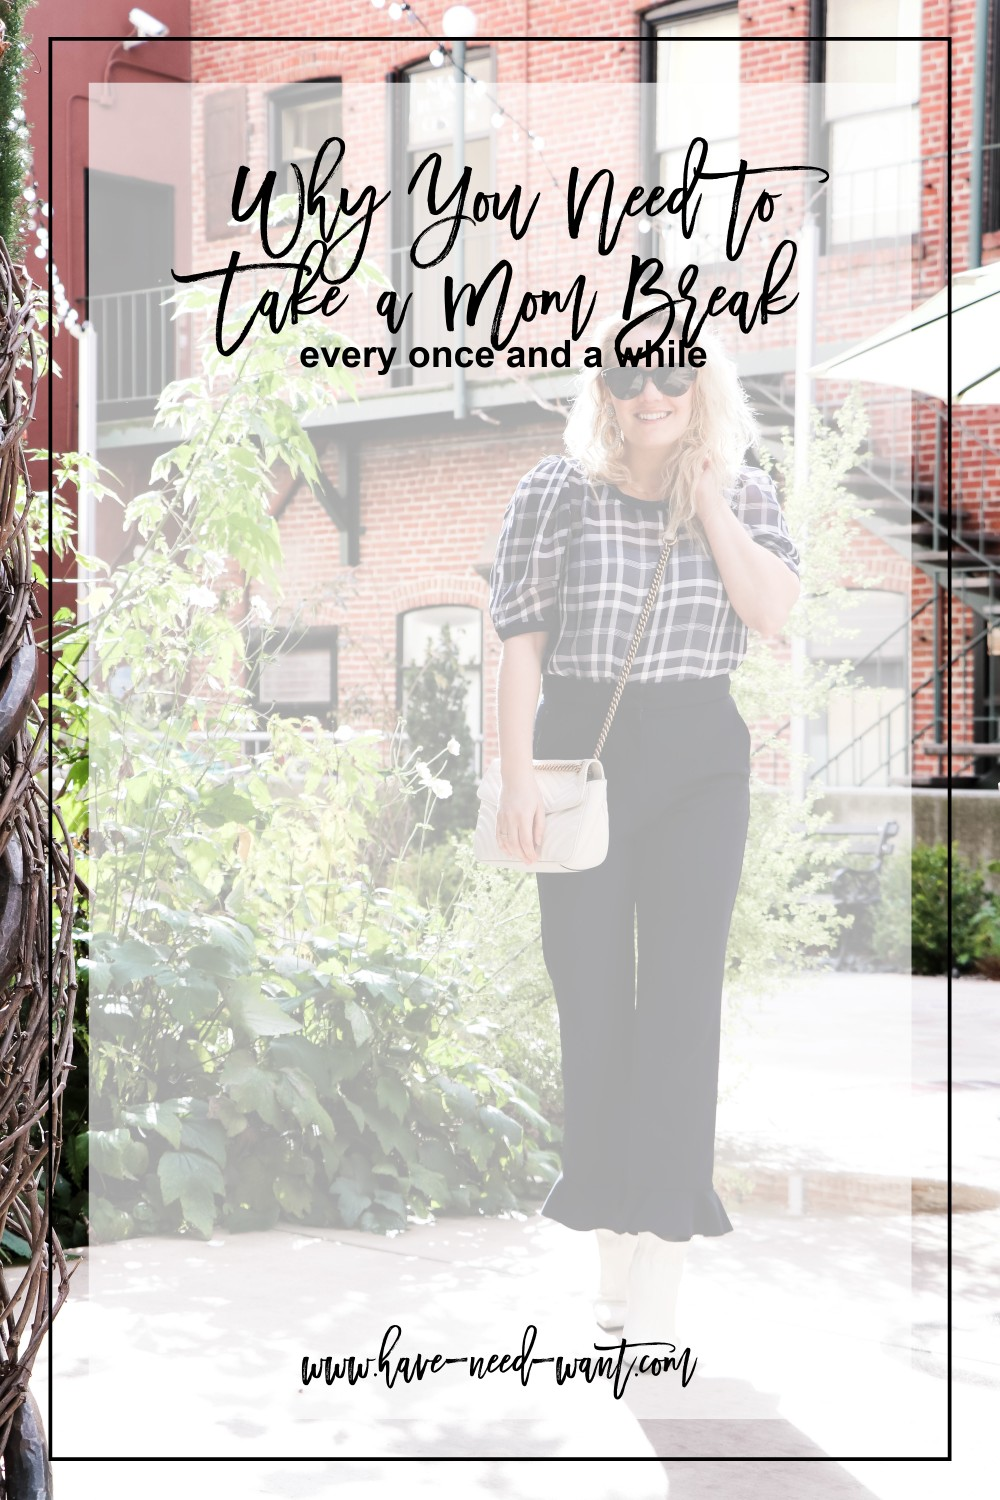 Talking about why it's important to take a mom break on Have Need Want today! Click on the photo to read the post! #mombreak #momstyle #targetstyle #targetanewday #express